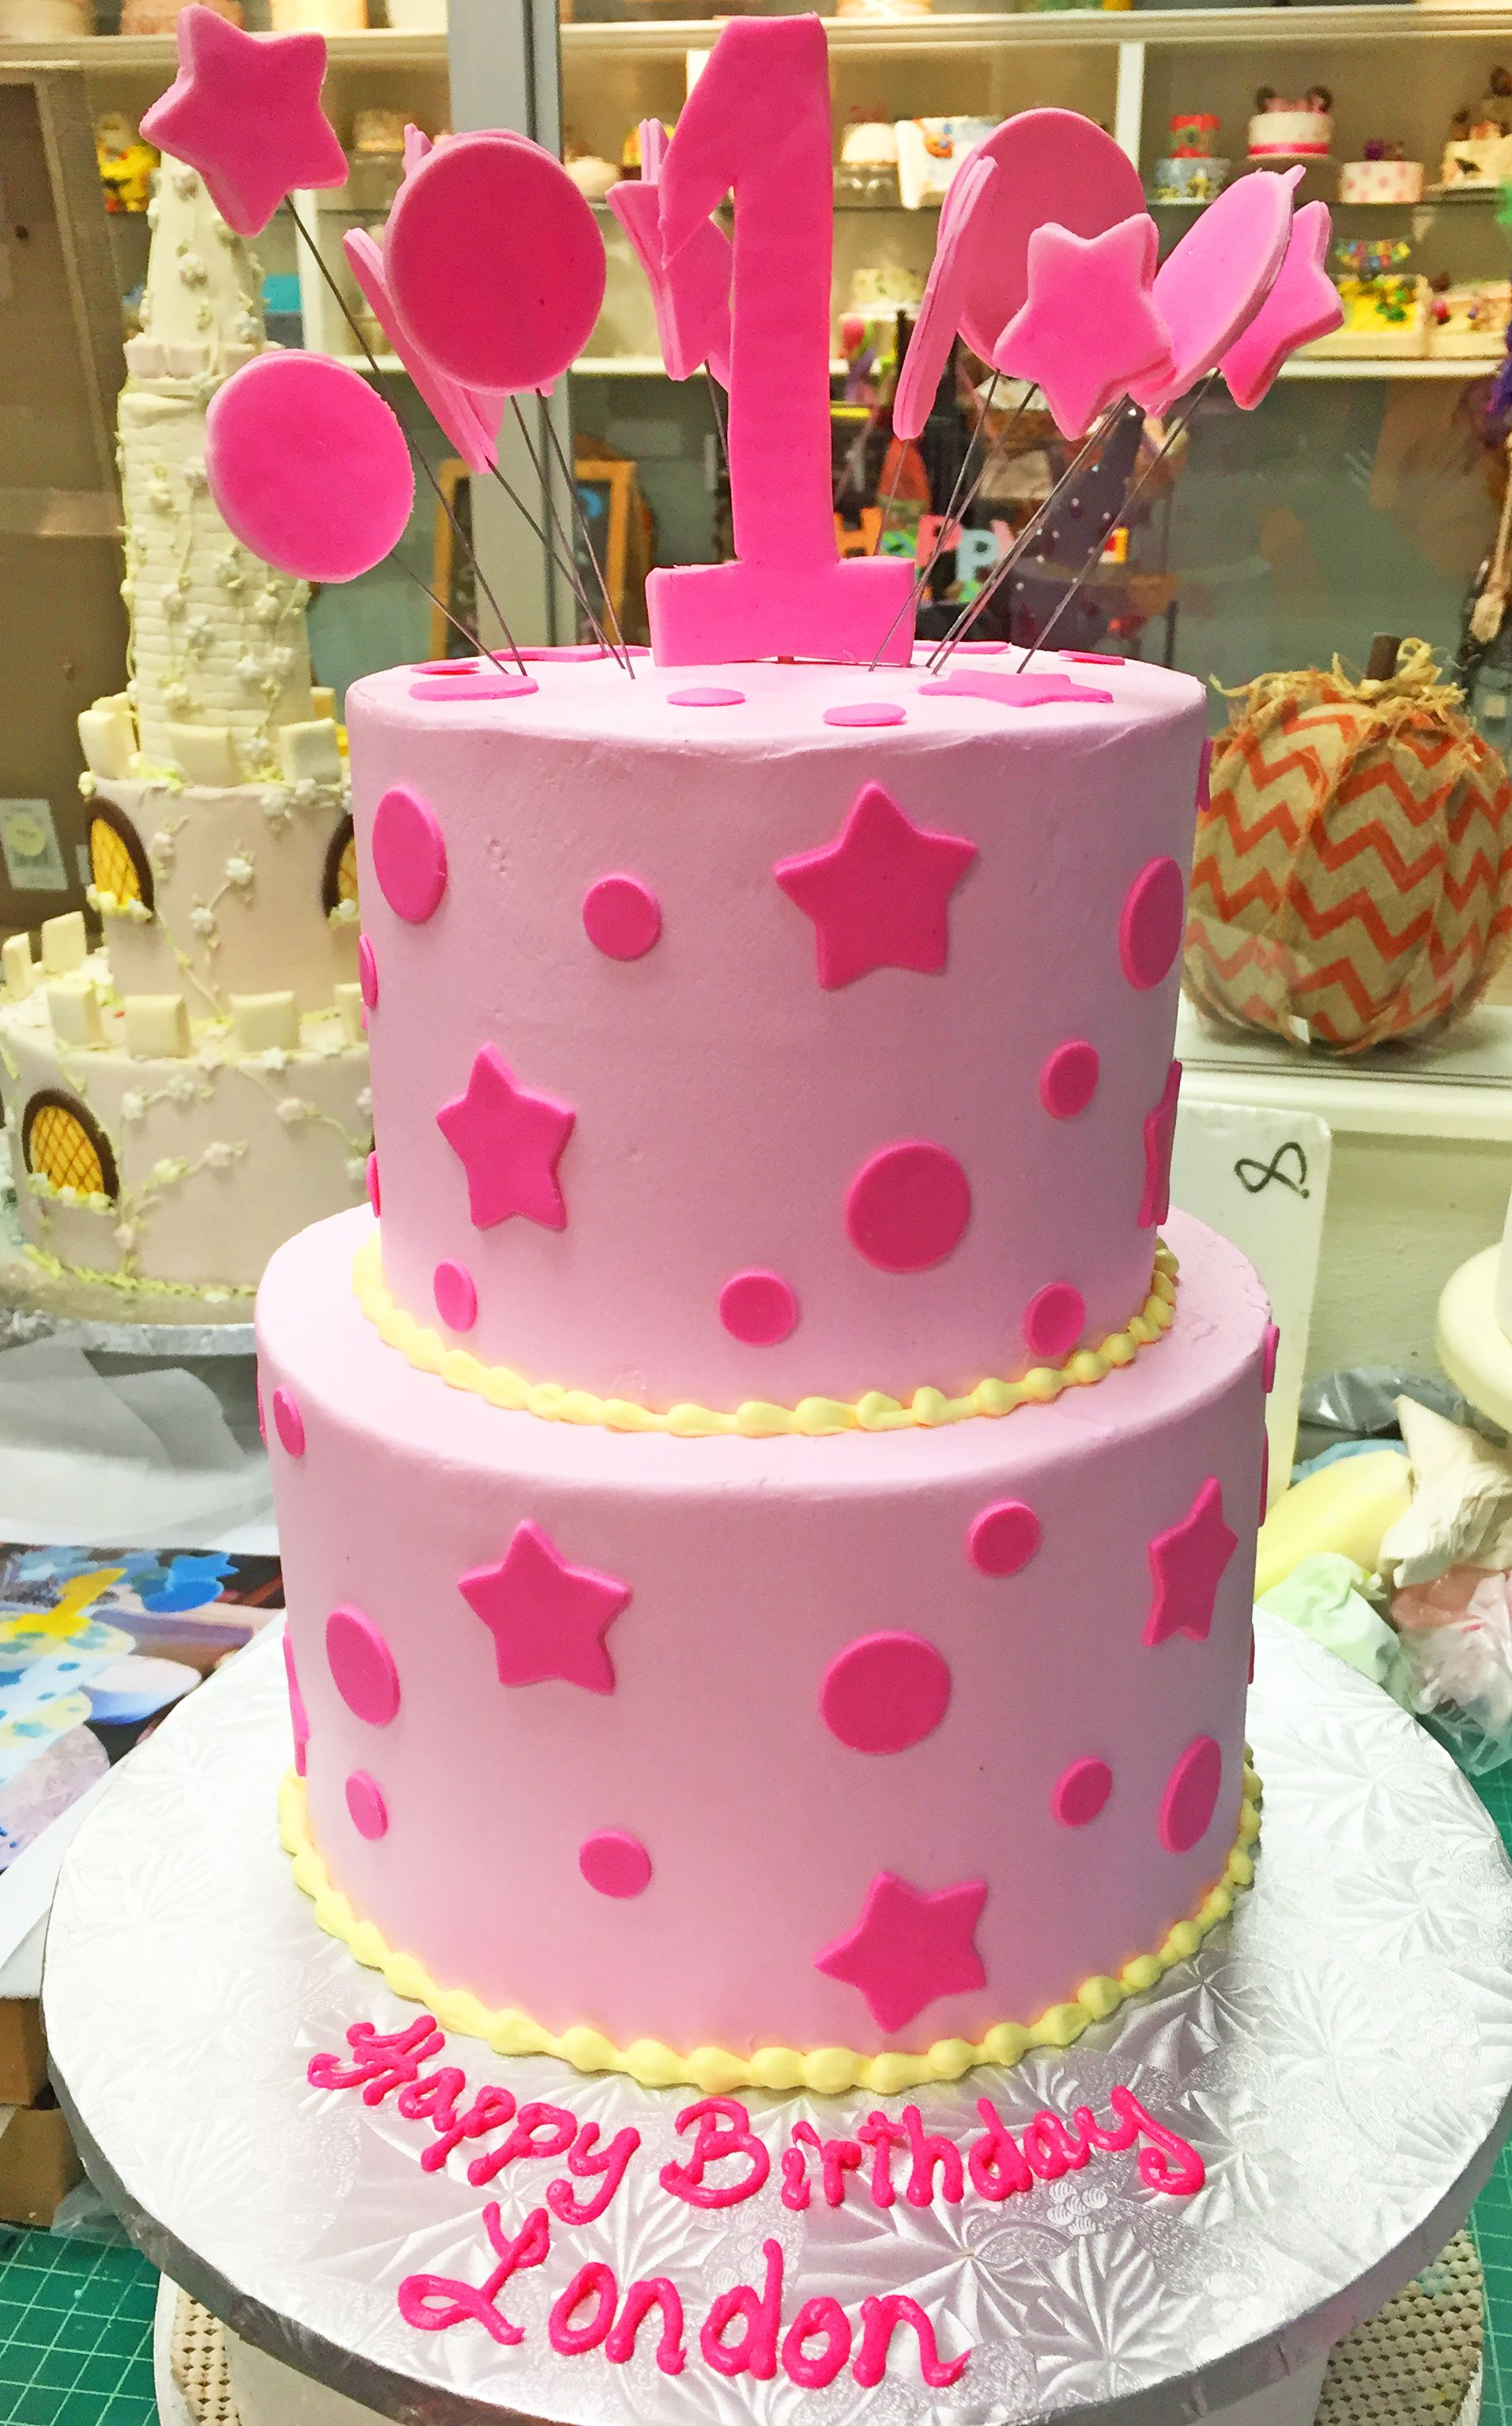 Superb A 1St Birthday Cake With Stars And Polka Dots Cake 149 With Funny Birthday Cards Online Fluifree Goldxyz